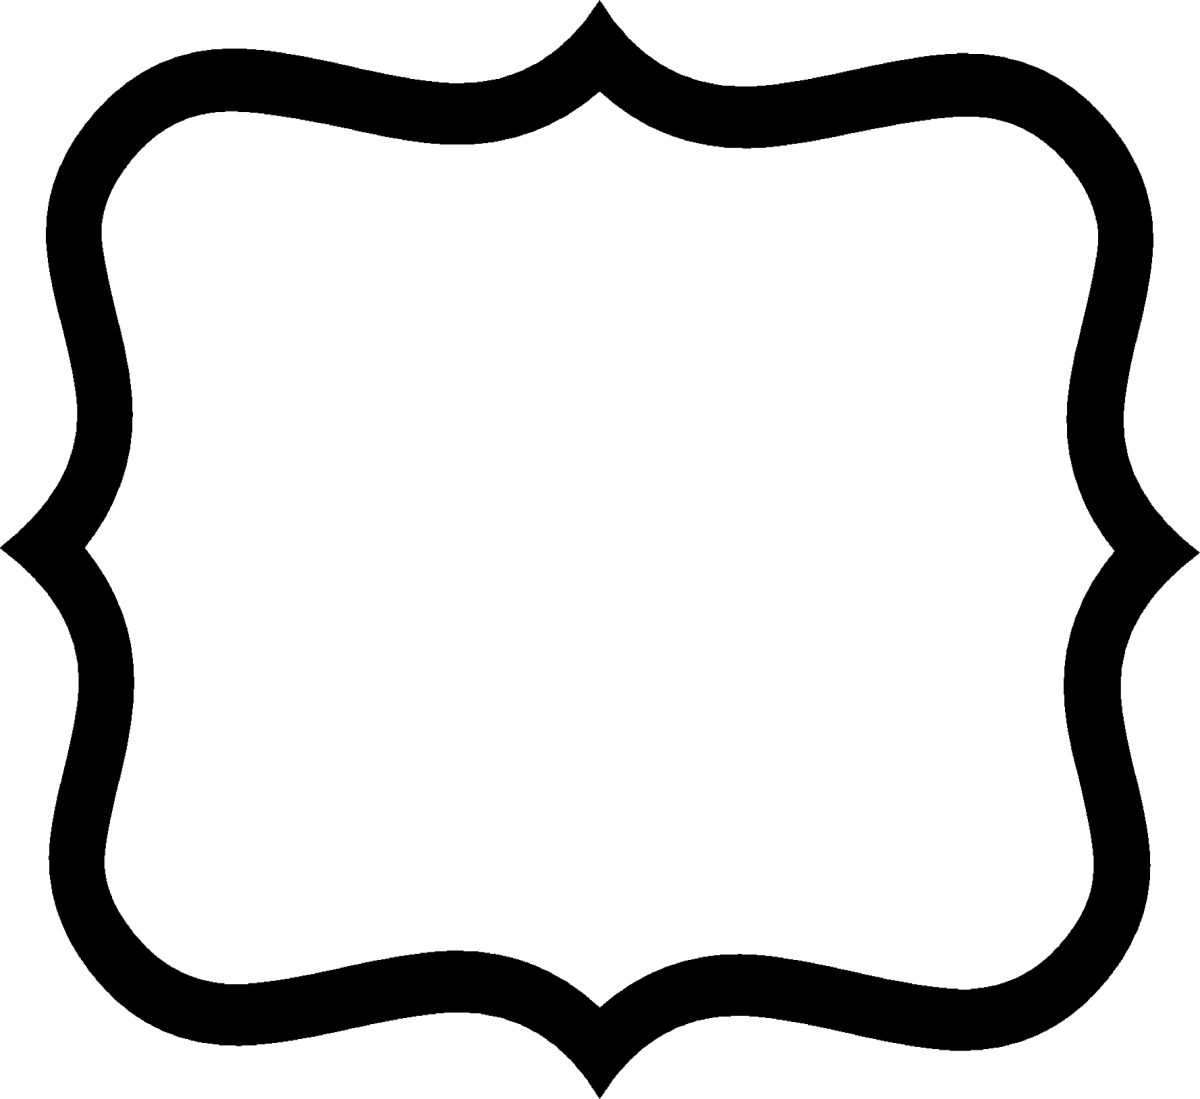 blank tag transparent png pictures - free icons and png backgrounds